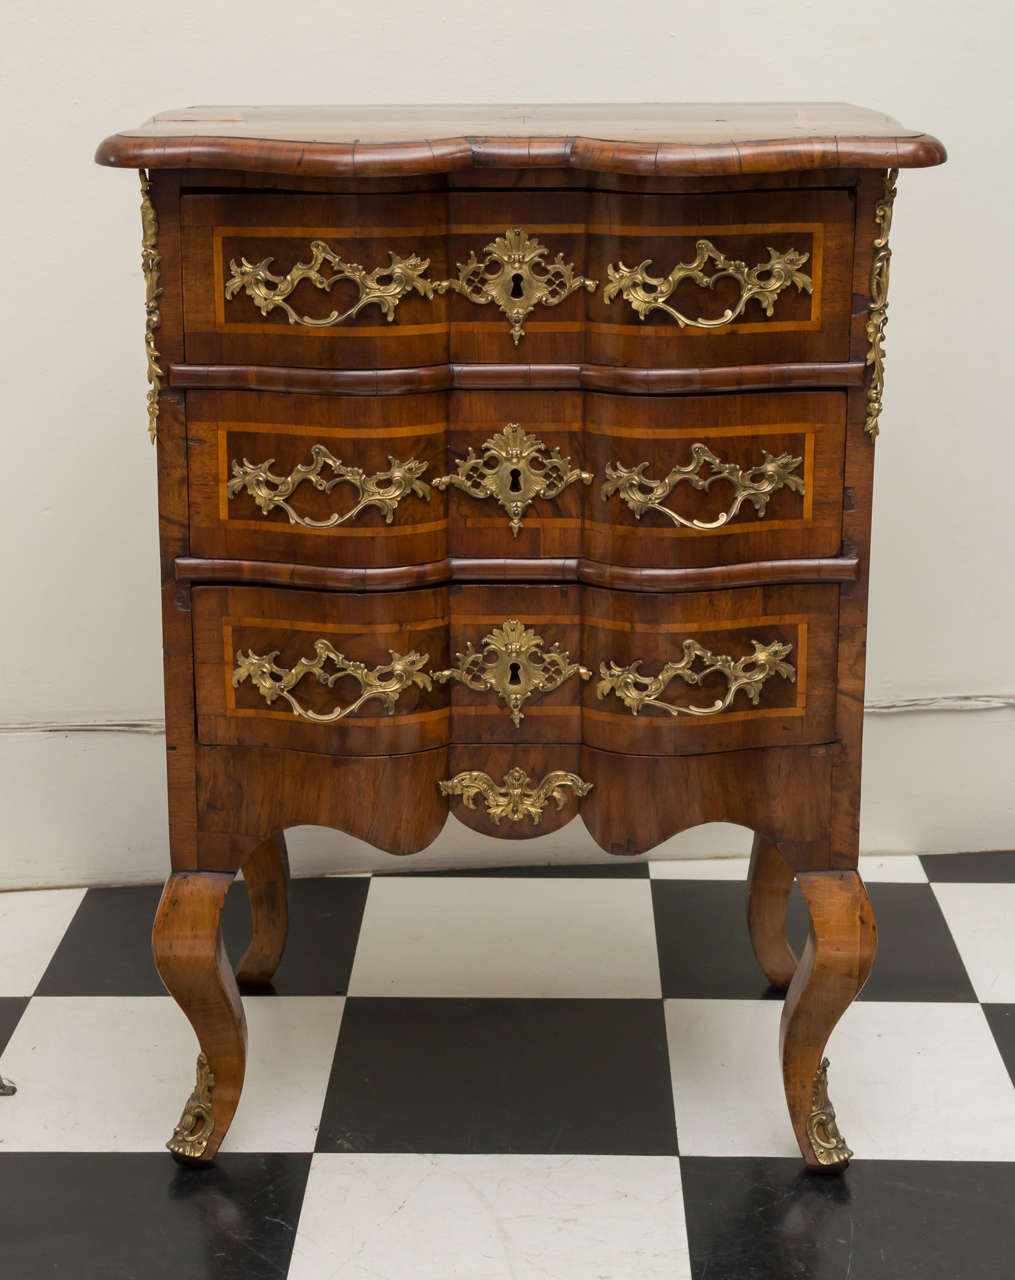 Diminutive 18th century German walnut Rococo commode. Stylish shaped top and front with figured walnut veneers. crossbanded top and drawers all fitted with gilt brass mounts. Three well-proportioned drawers over stout cabriole legs. Refinished,